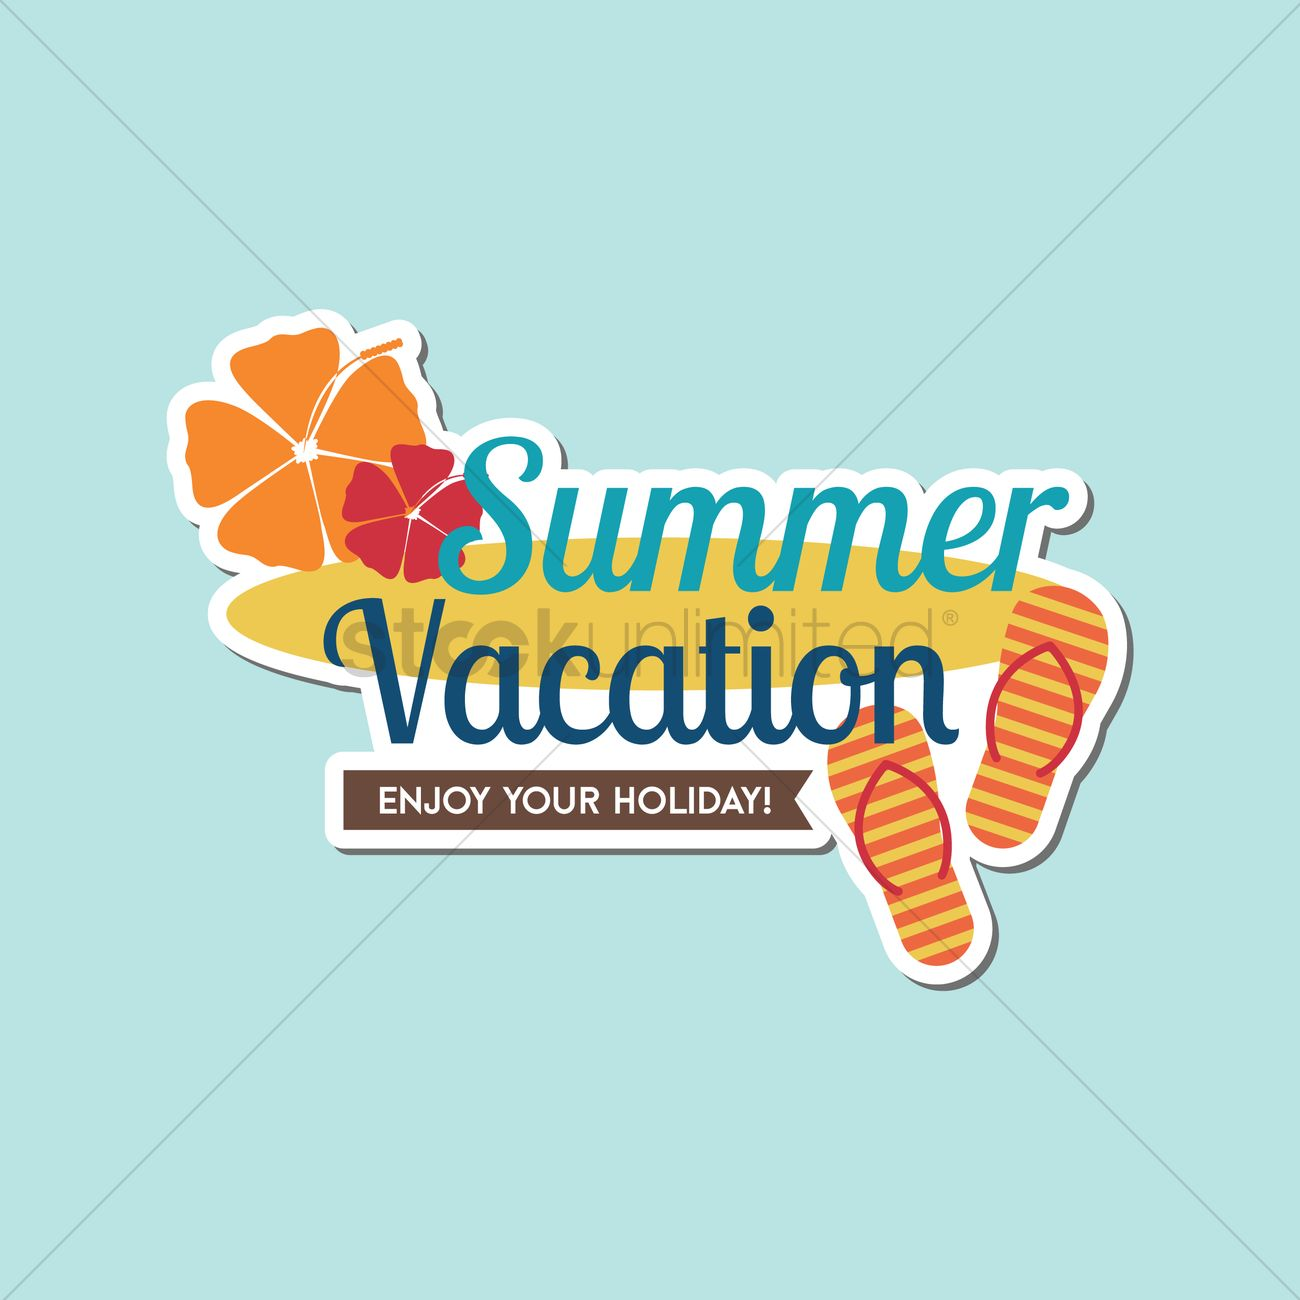 summer vacation vector image 1772528 stockunlimited